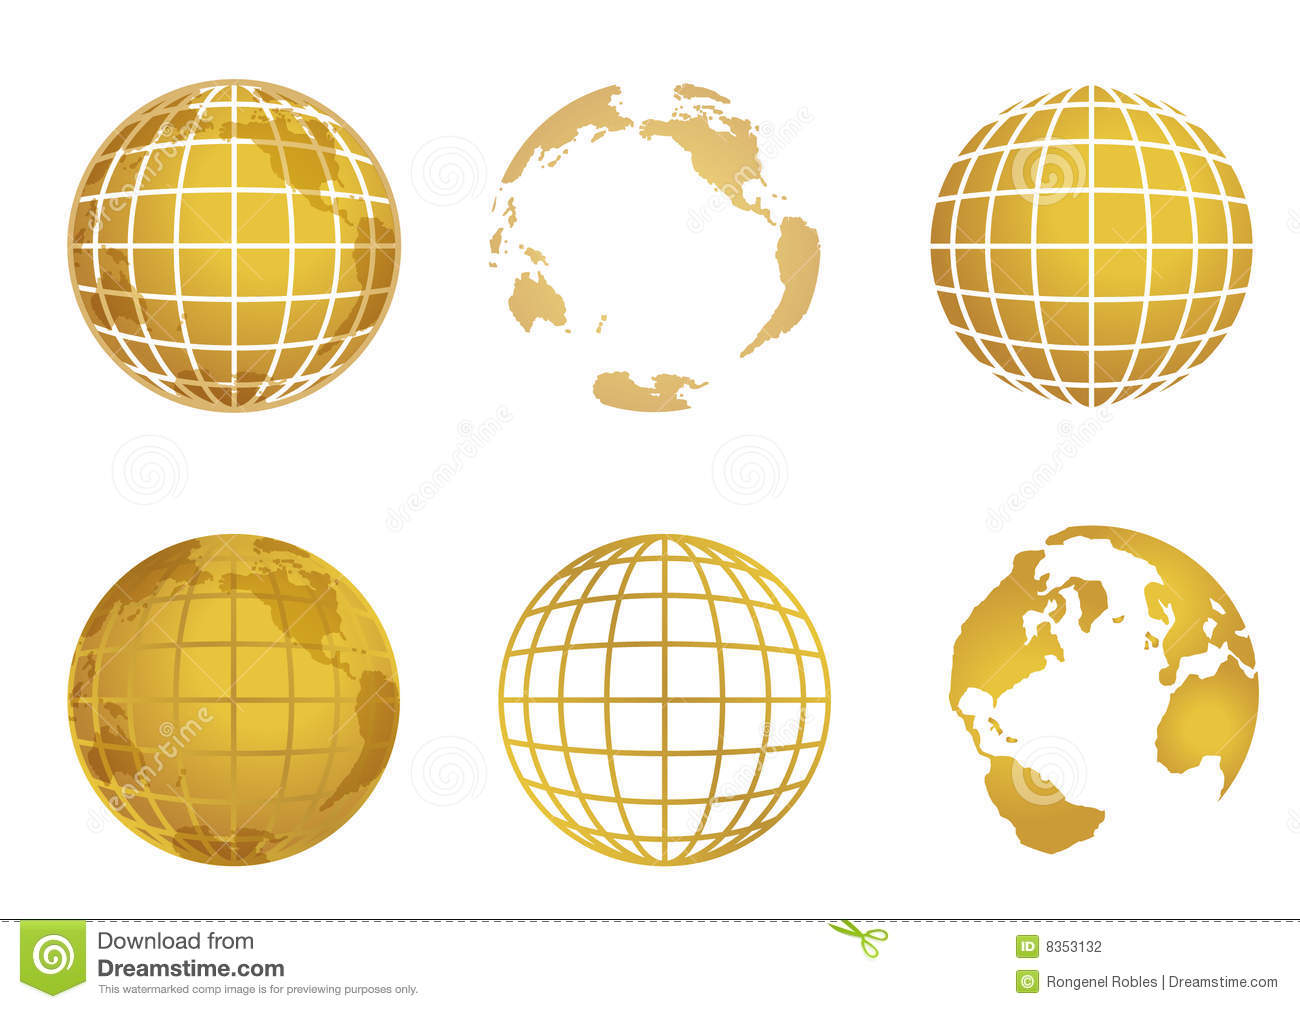 World map round clipart royalty free stock World map round clipart - ClipartFest royalty free stock